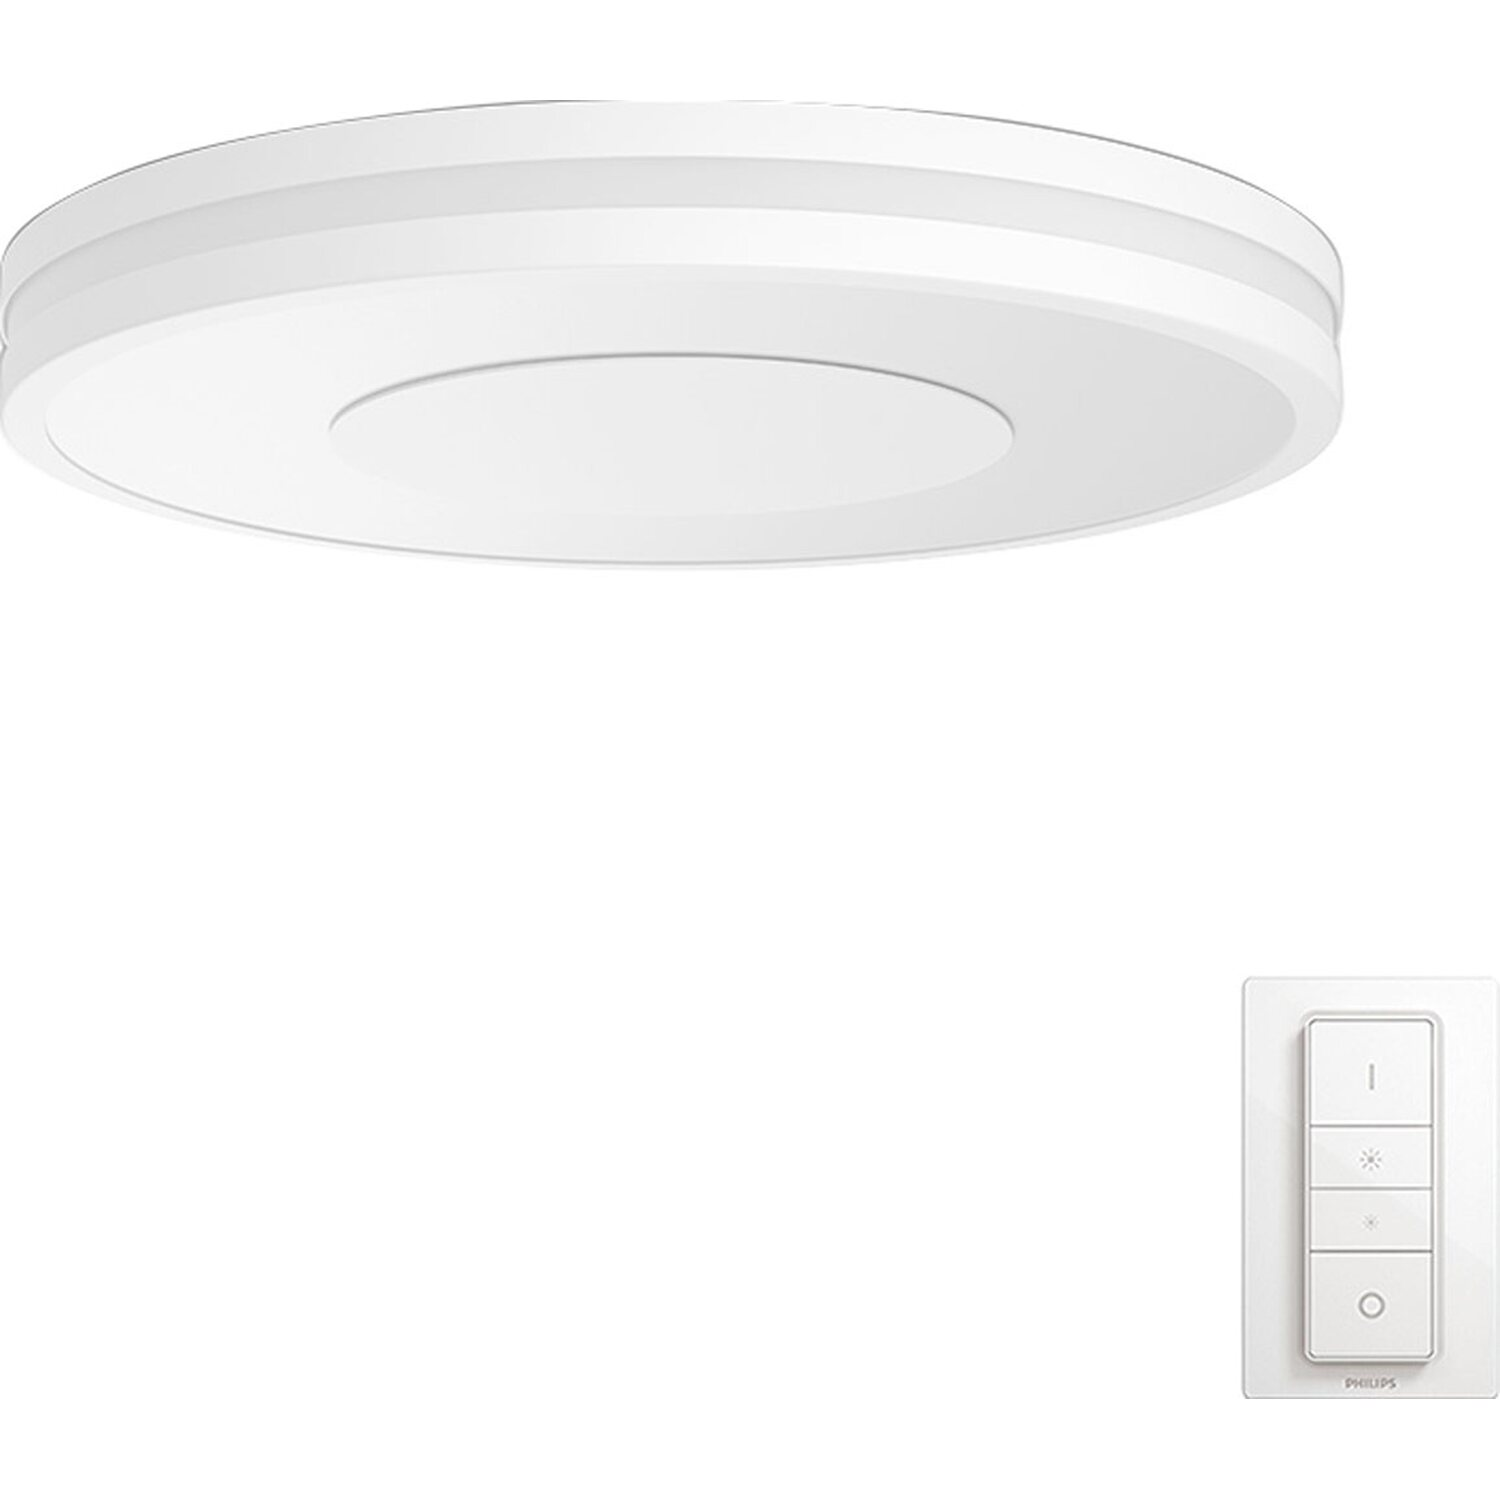 Plafoniera Led Philips.Philips Hue Plafoniera Led Being Con Telecomando Dimmer Switch